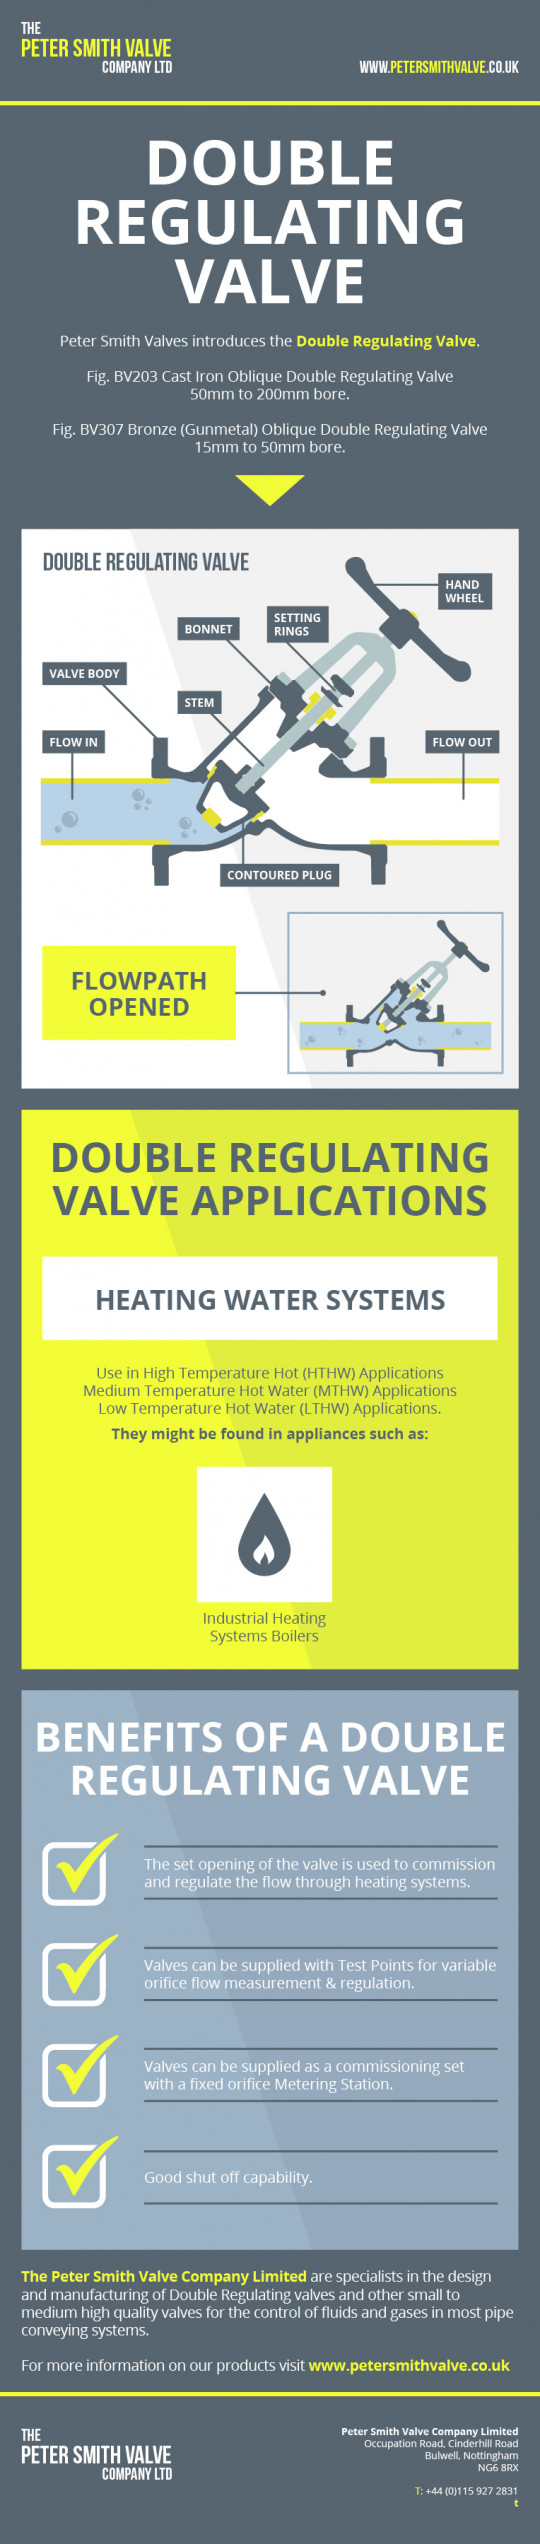 Double Regulating Valve